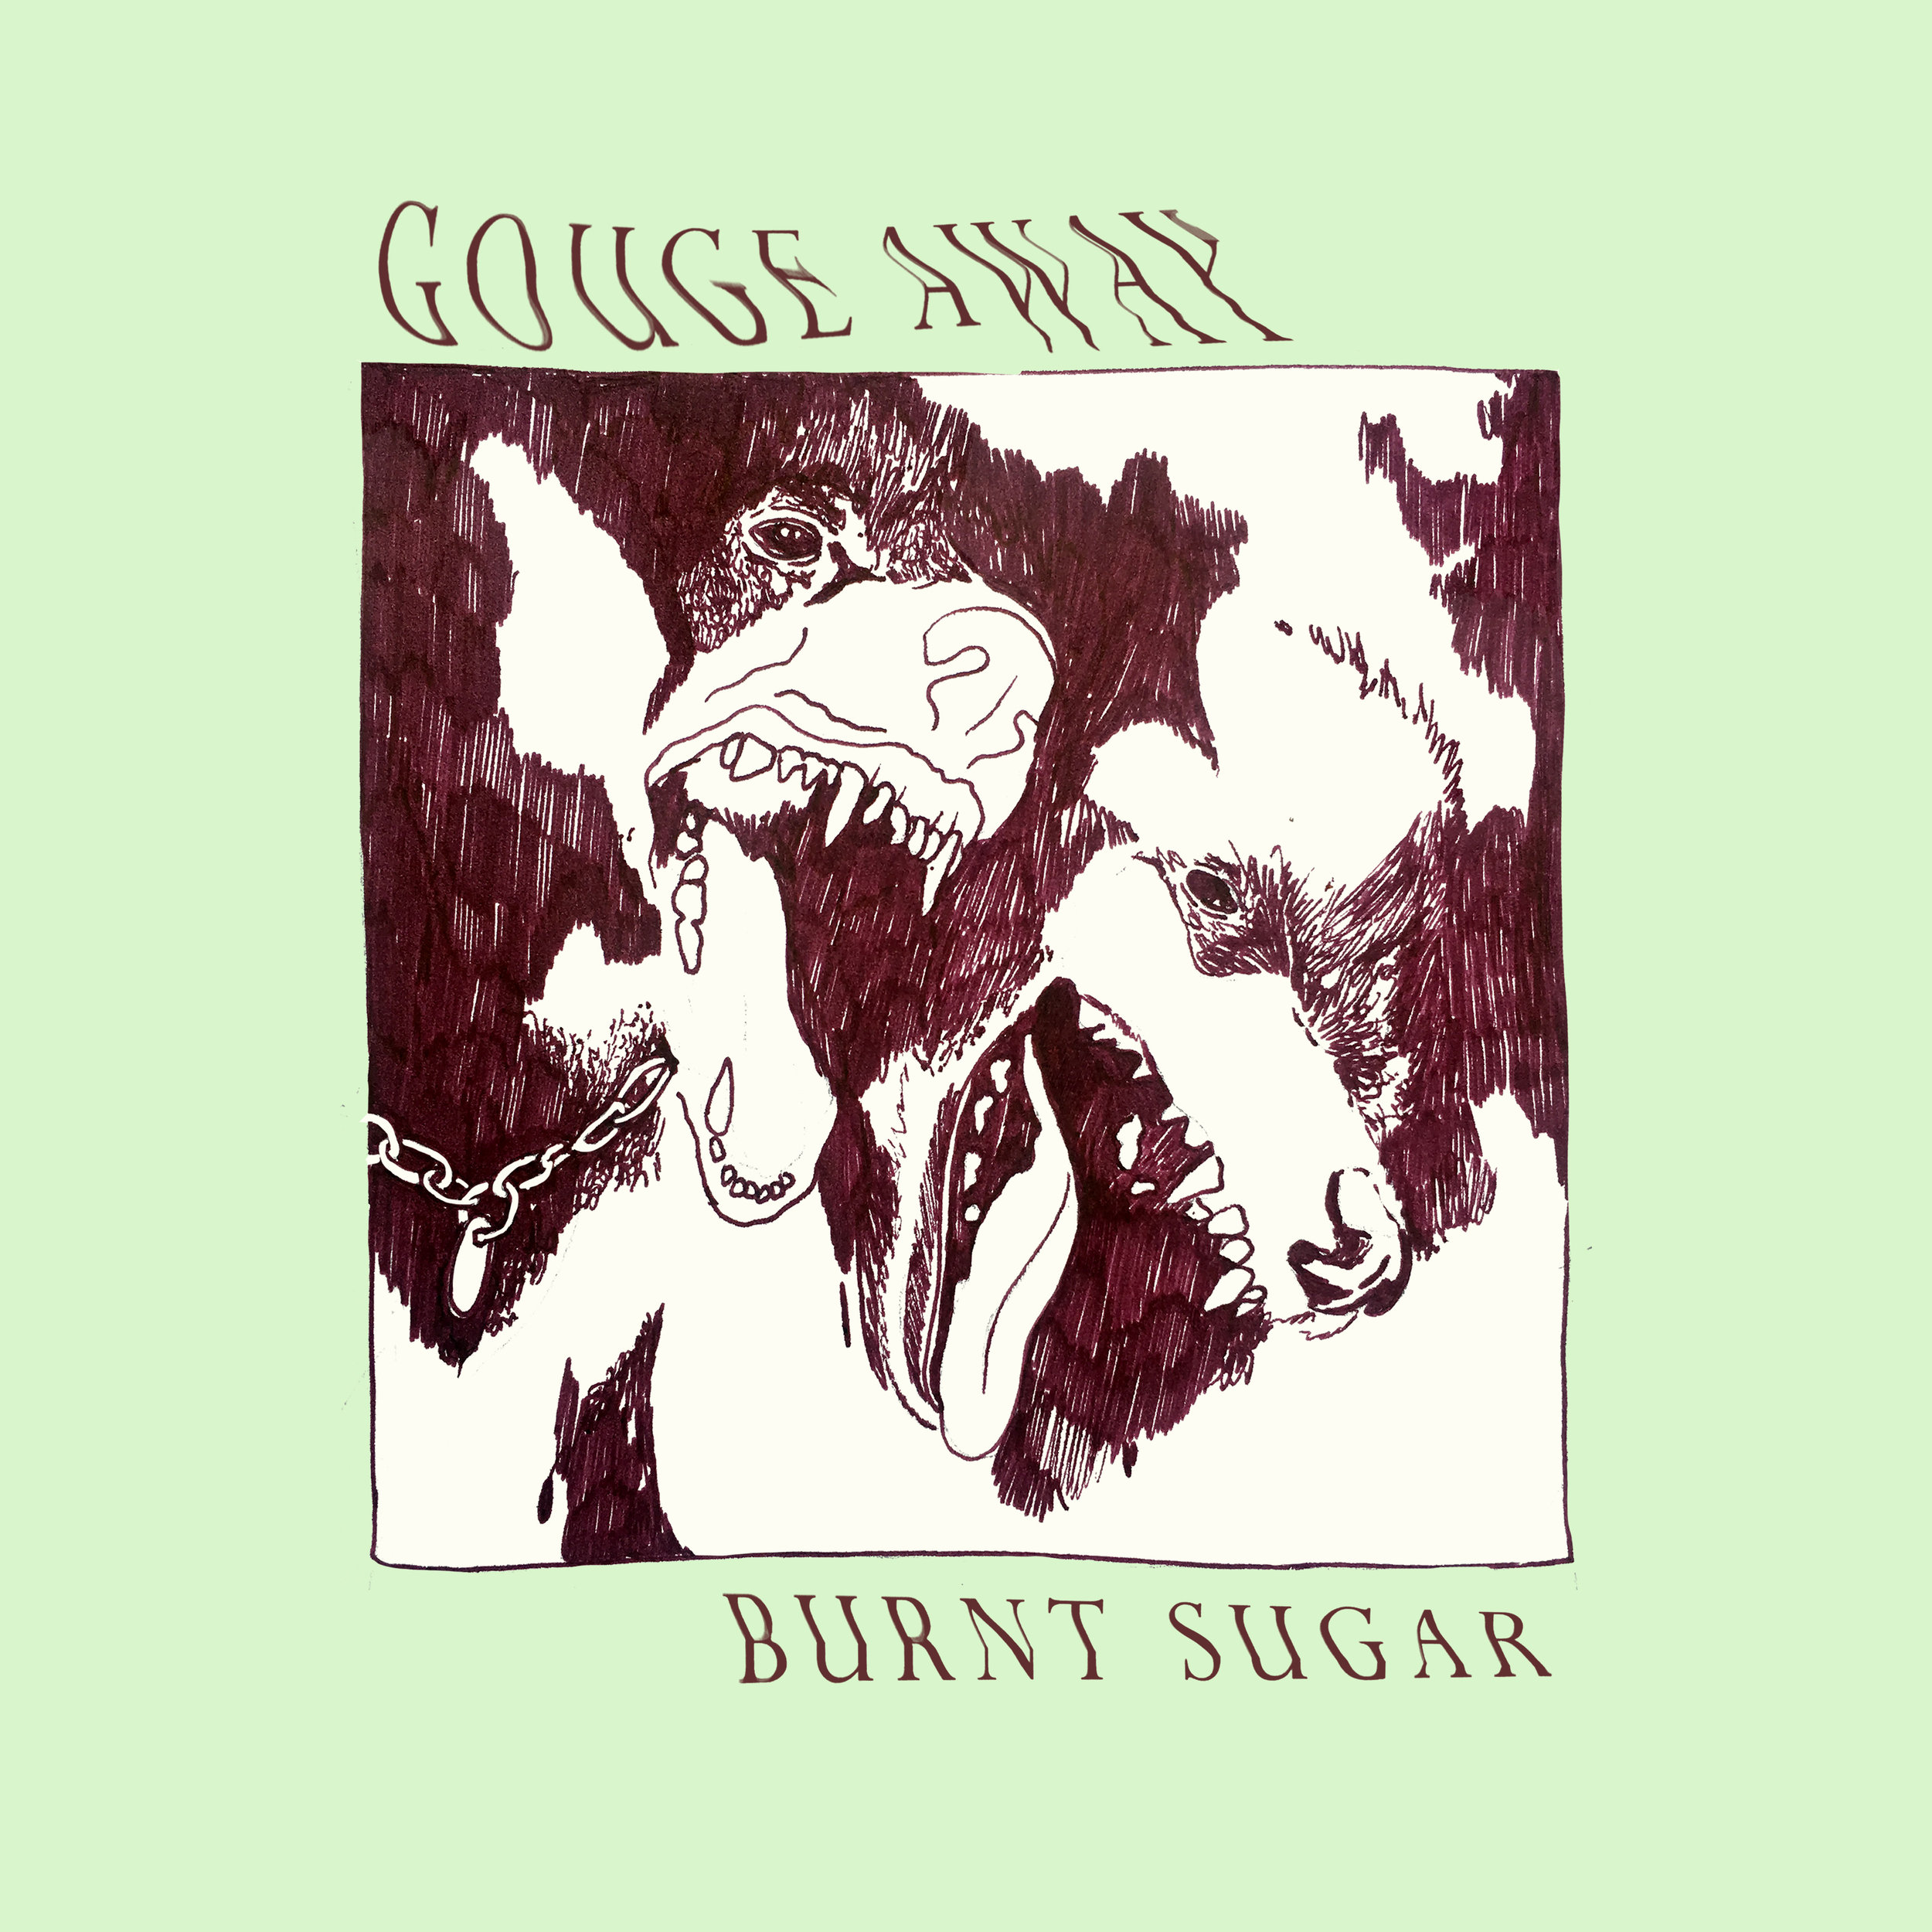 gouge away - burnt sugar.jpg